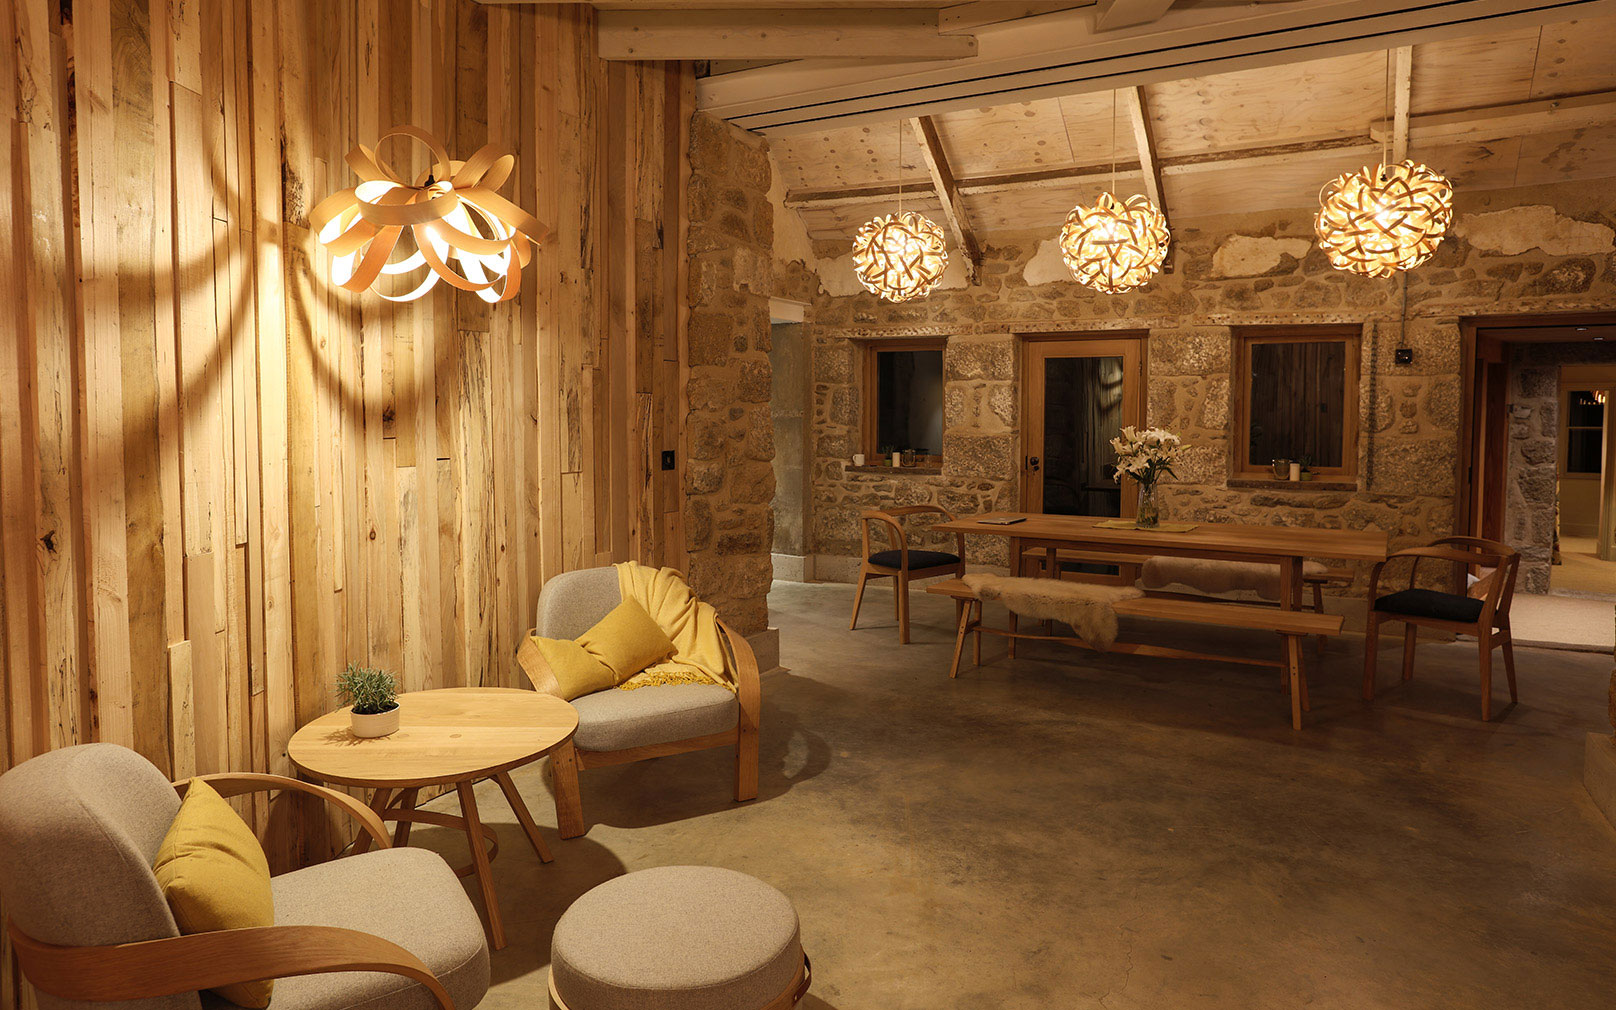 Inside Tom Raffield's house, with wooden walls, concrete floor and his steam-bent-wood lights